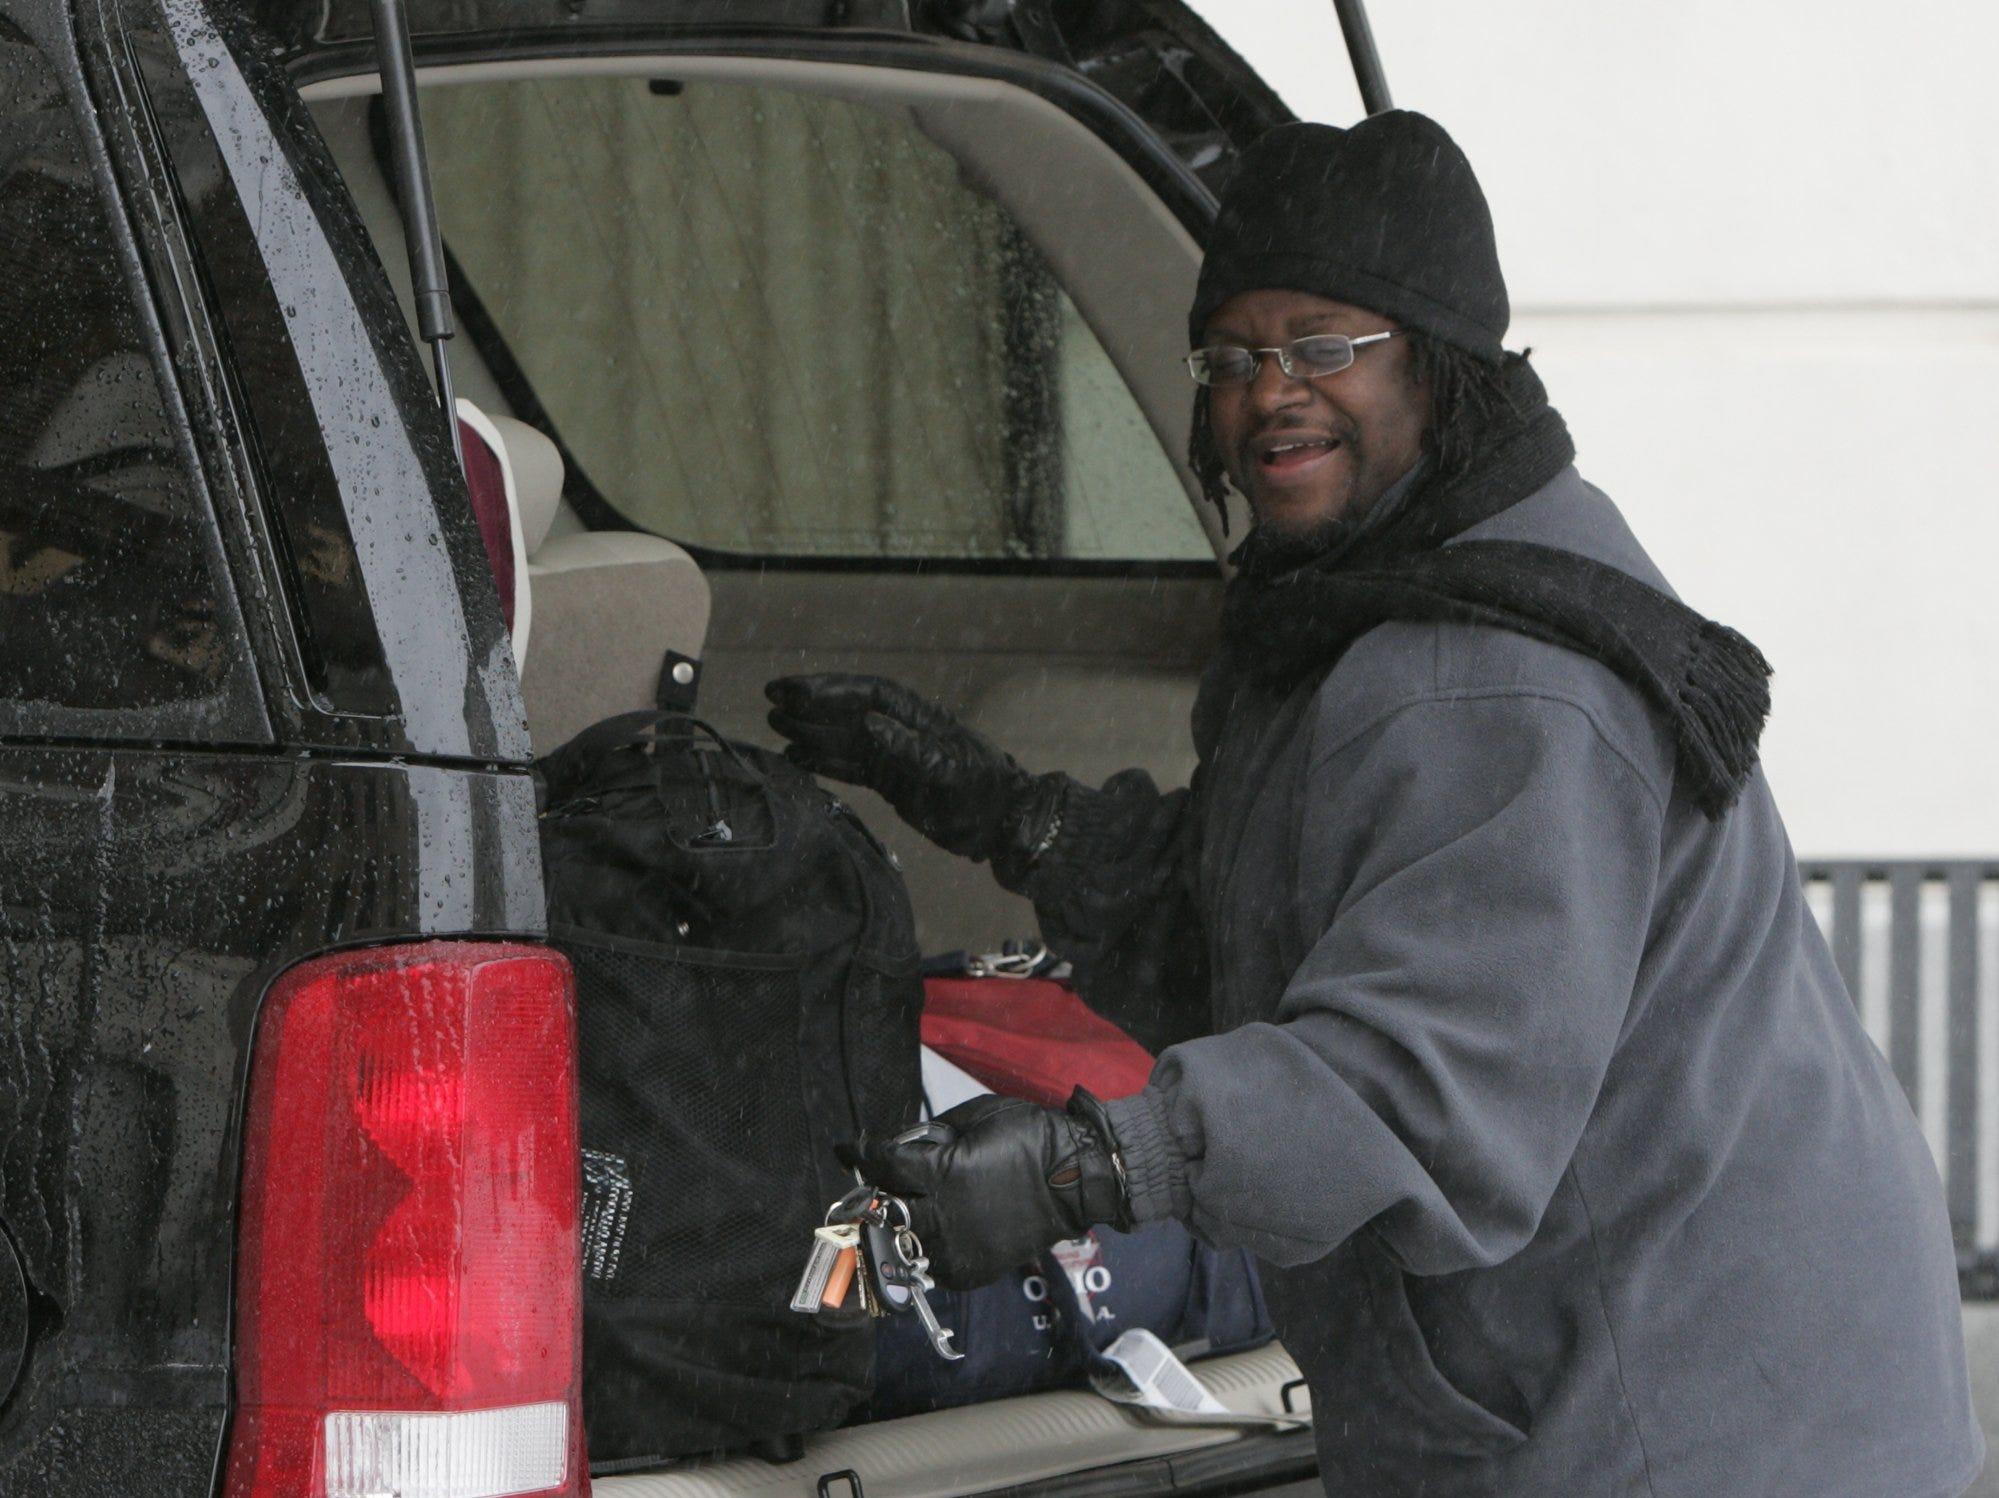 Dexter Casen, volunteered to transport a gospel singing group from the Westin Poinsett to GSP despite the snow and ice, simply because he was need, Saturday, January 29, 2005.